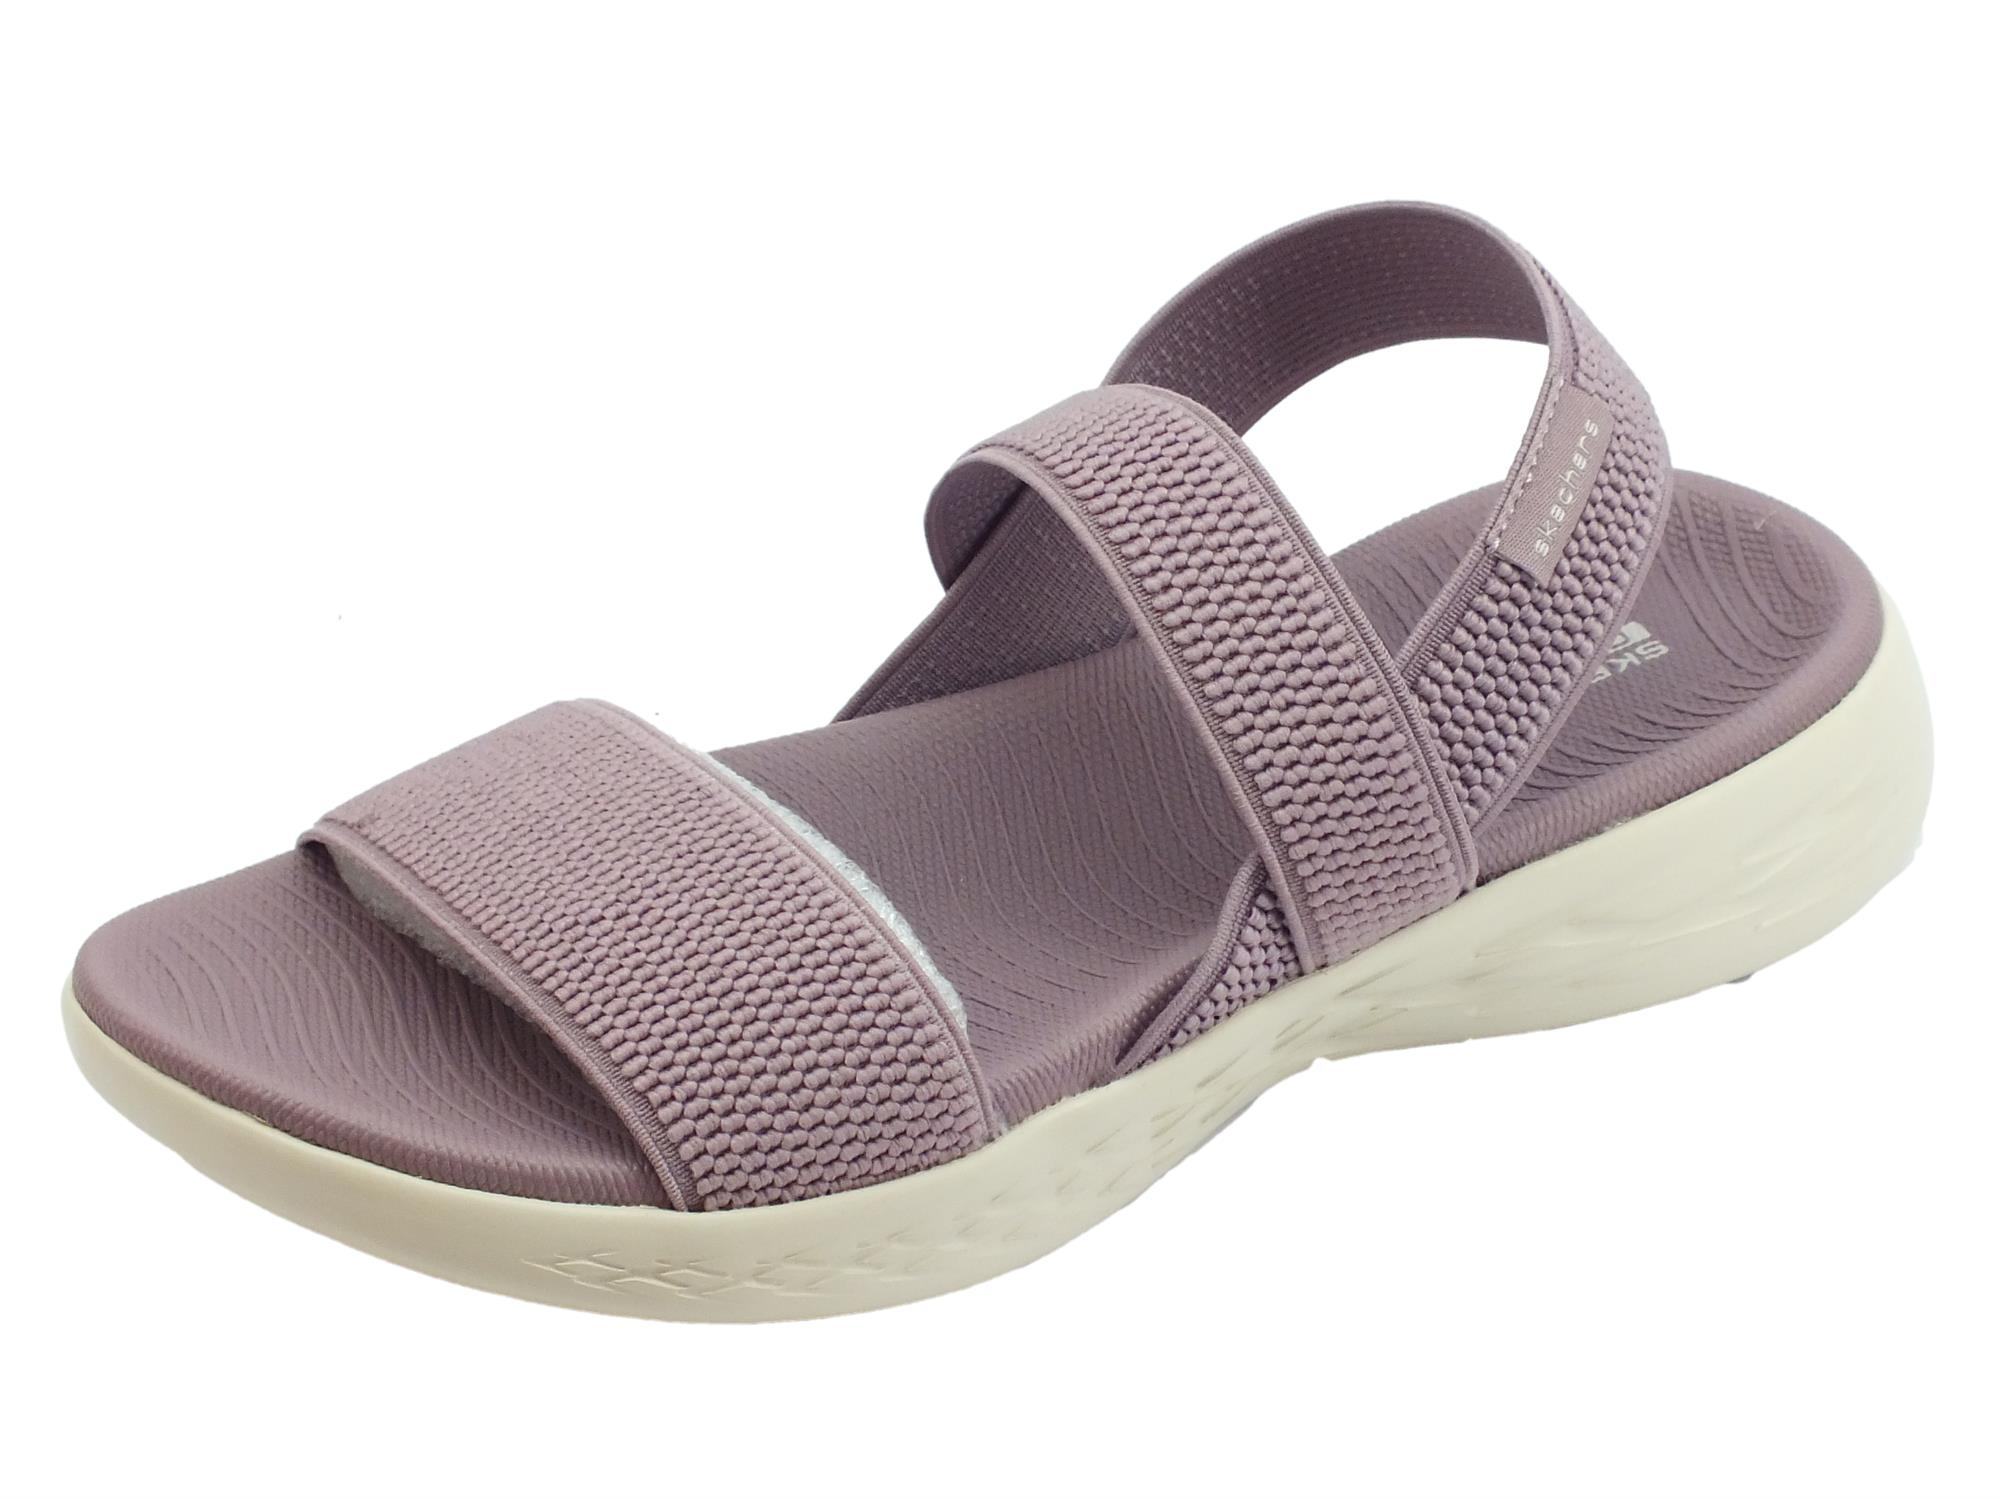 Skechers On-The-Go 600 Flawless Light Mauve sandali sportivi per donna  tessuto